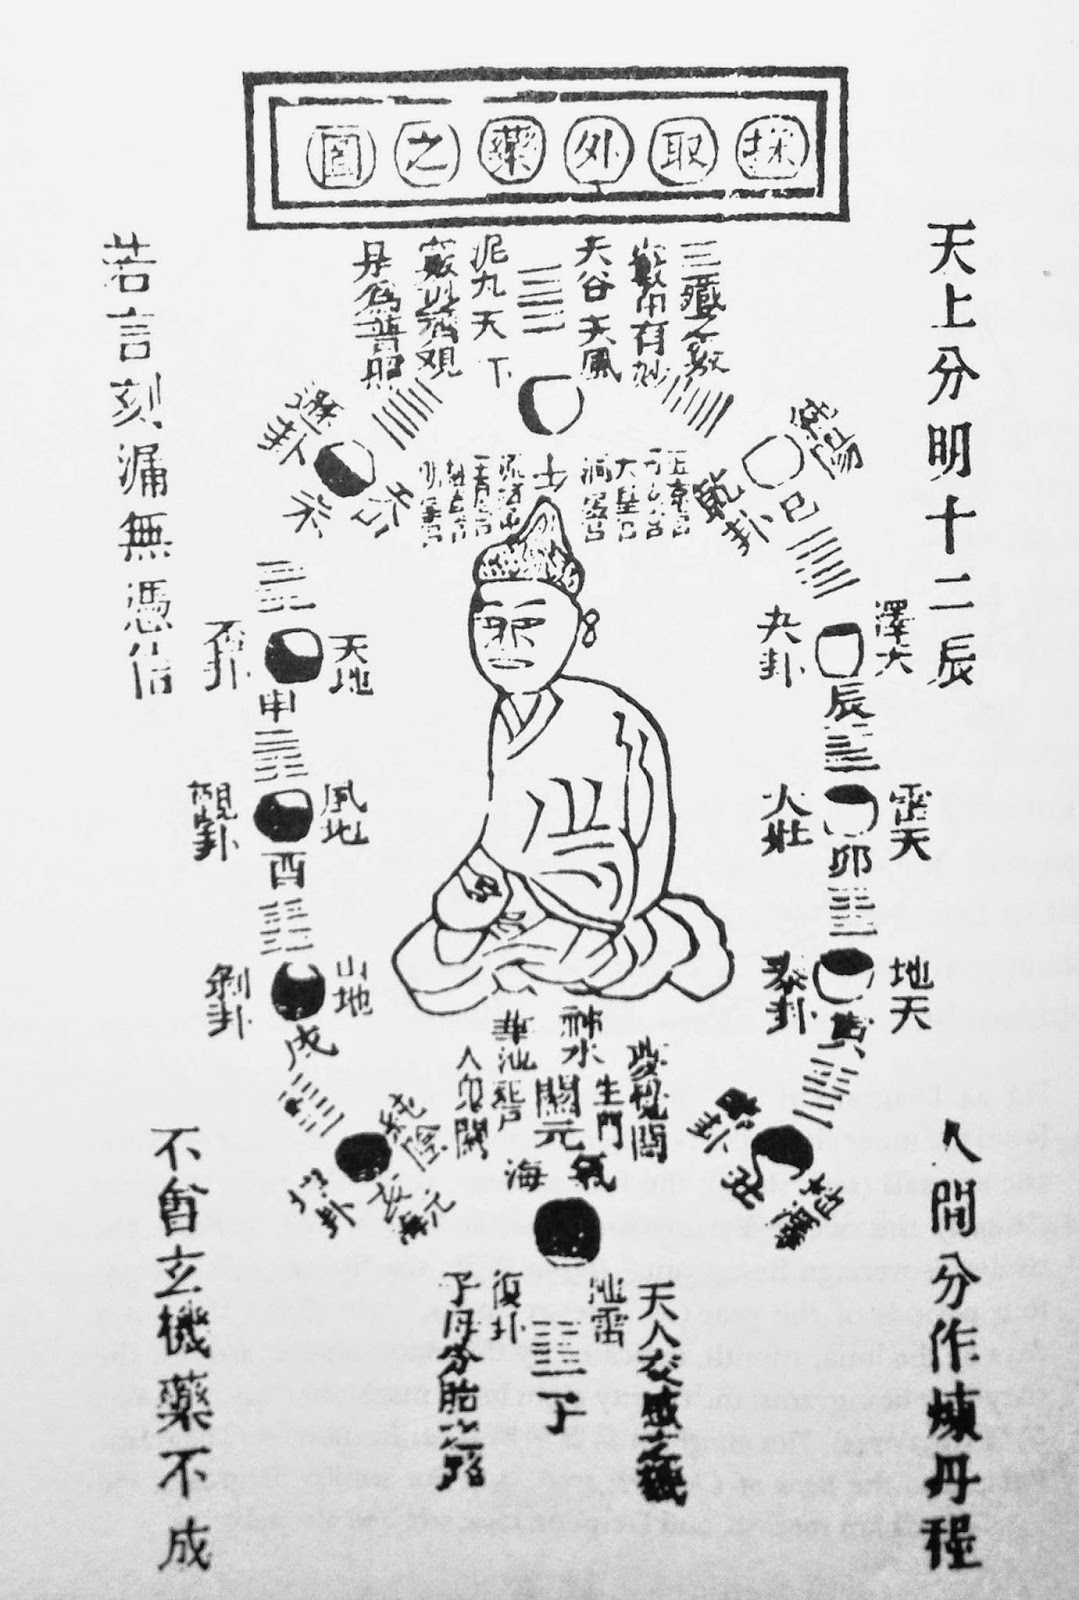 Taolainen perinne early literary sources of daoist internal alchemy this path of circulating the essence is regulated by the system of the fire times huohou it inverts the ordinary tendency of the essence to flow biocorpaavc Images